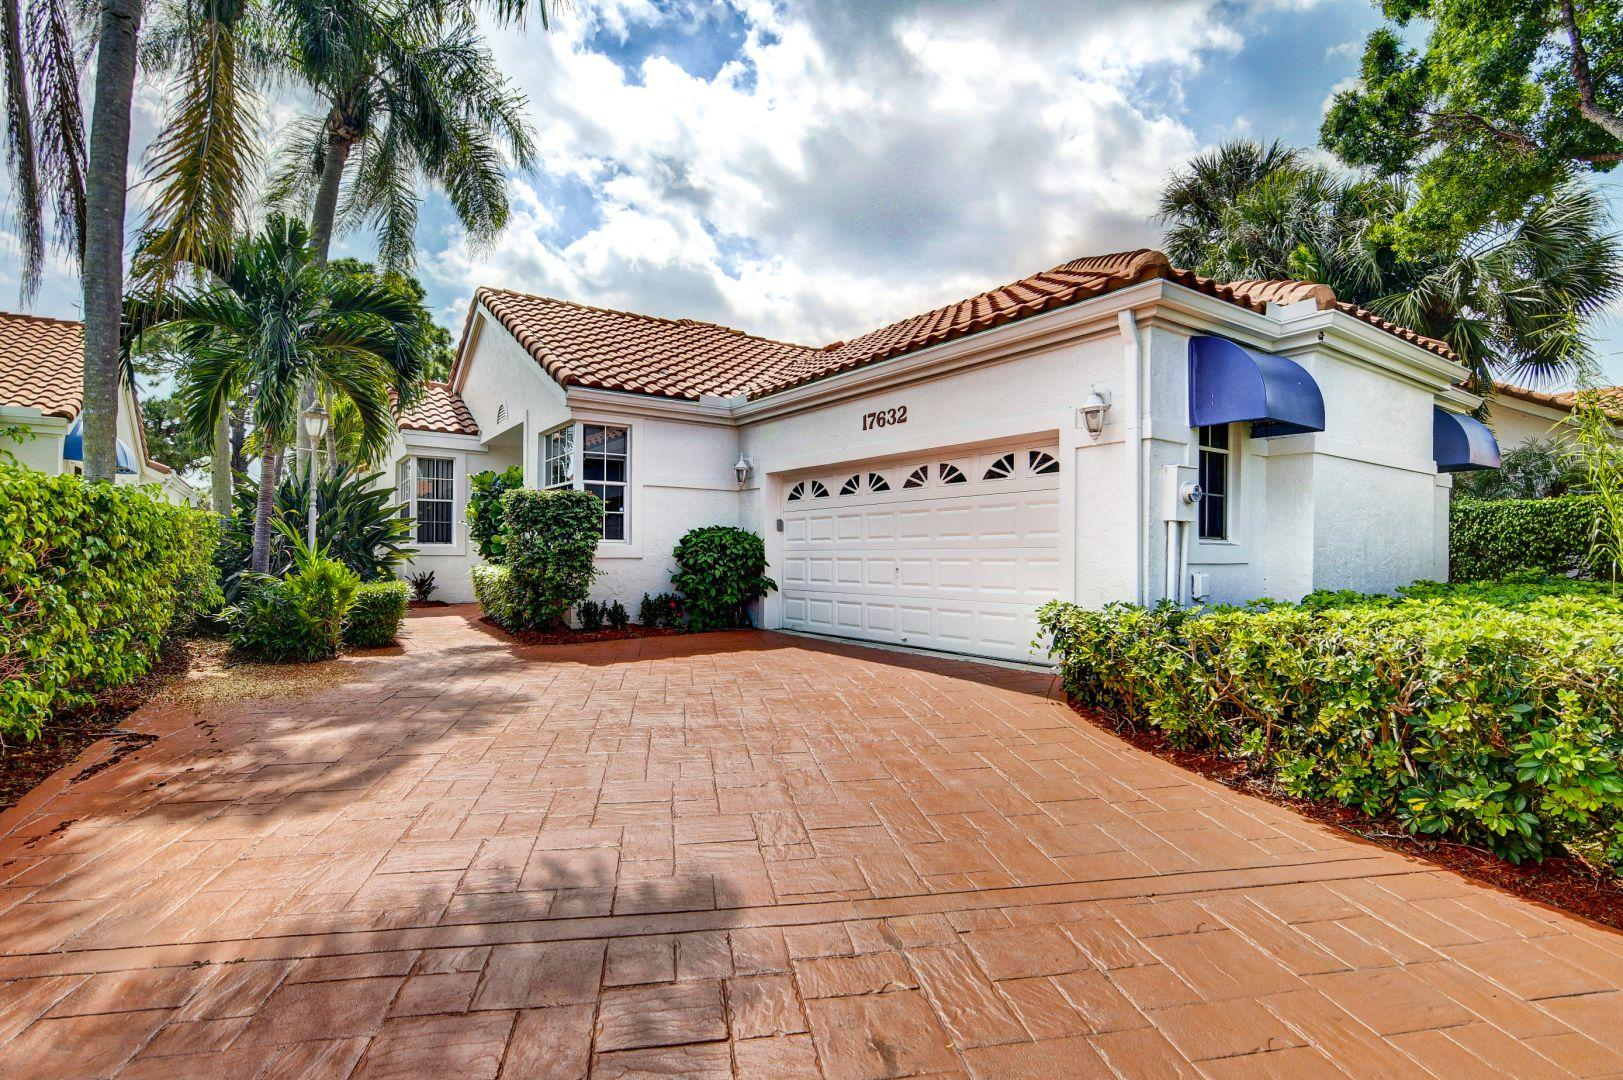 Home for sale in BOCA COUNTRY CLUB / CANDLEWOOD Boca Raton Florida